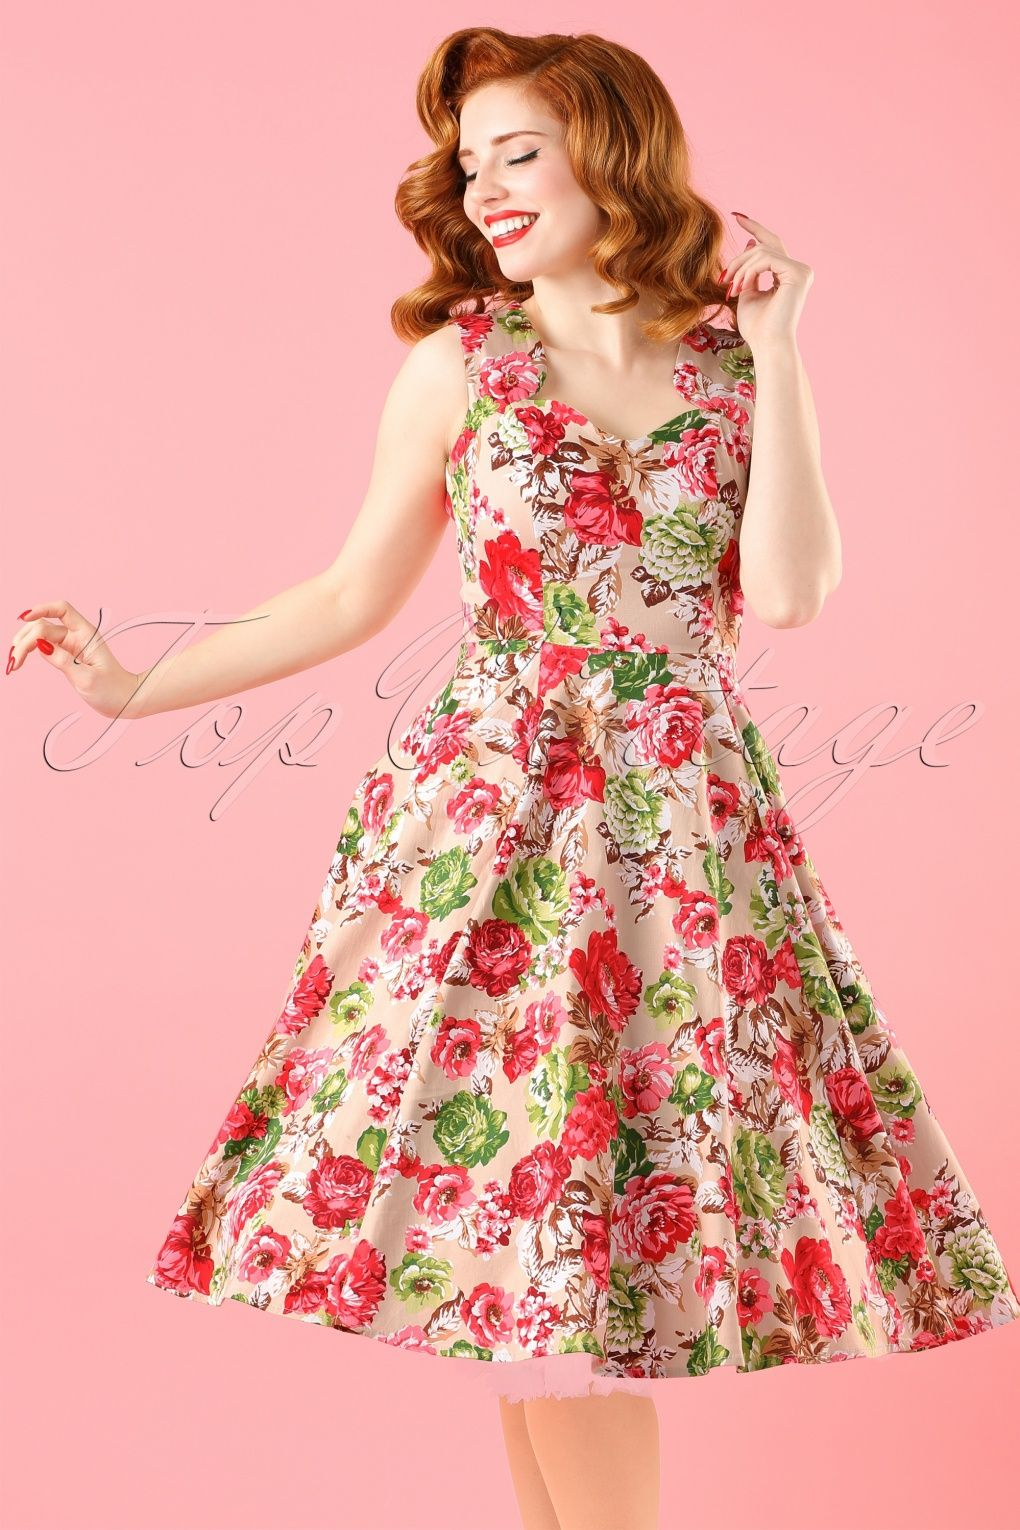 e1e212408b65 Maak een romantisch statement met deze 50s Bettie Floral Swing Dress! Een  elegante snit